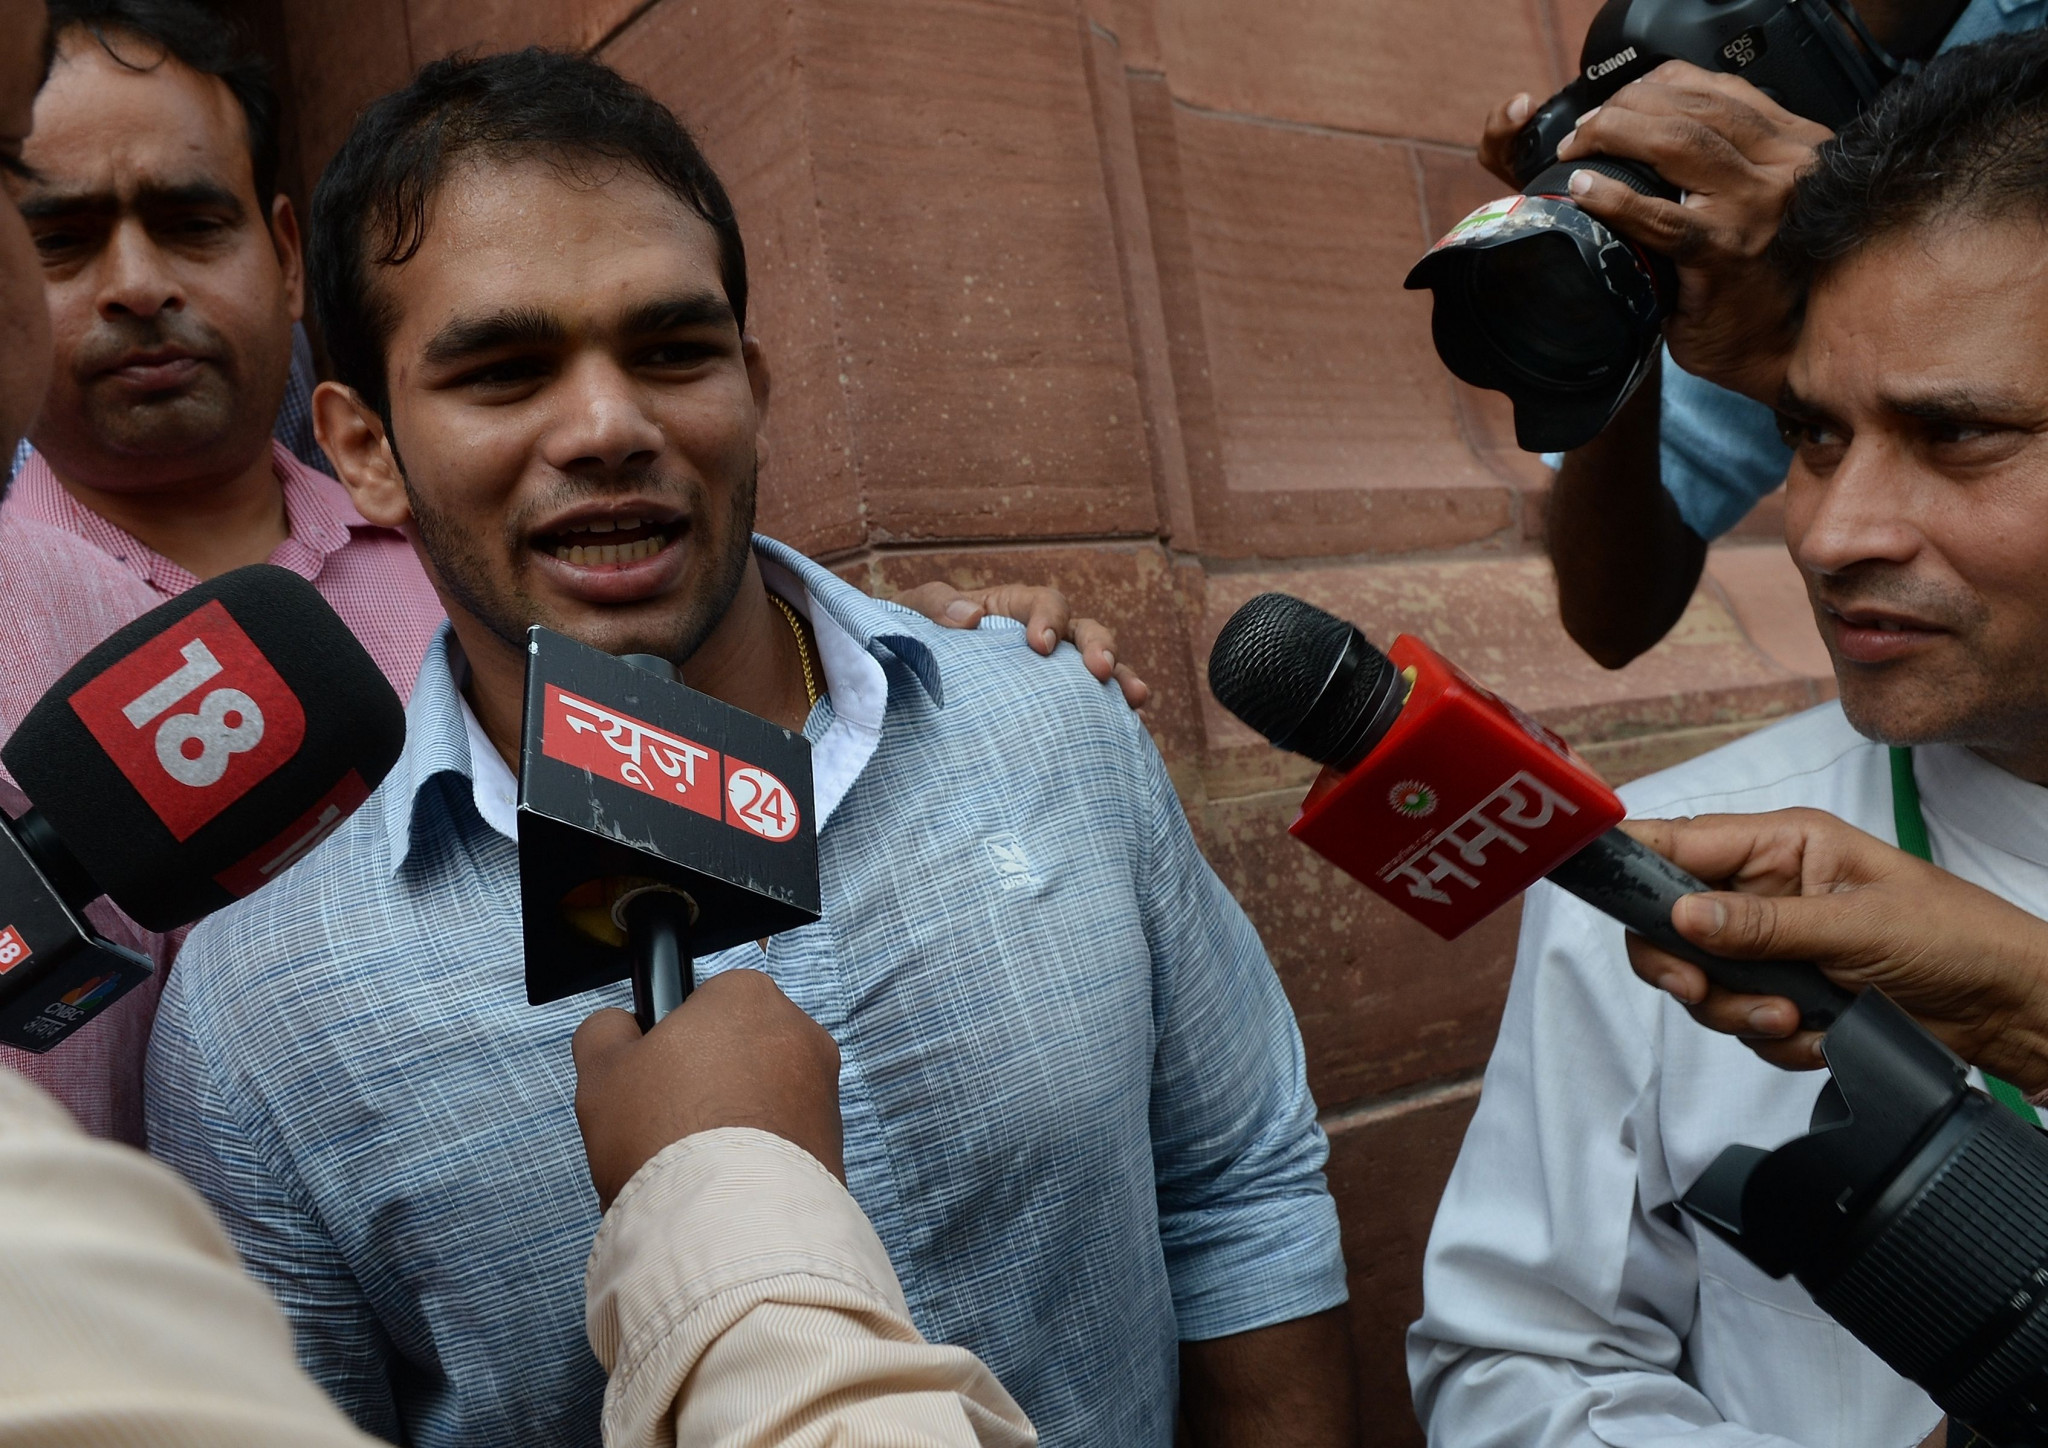 Narsingh Yadav has always insisted his food was spiked and he did not dope intentionally ©Getty Images